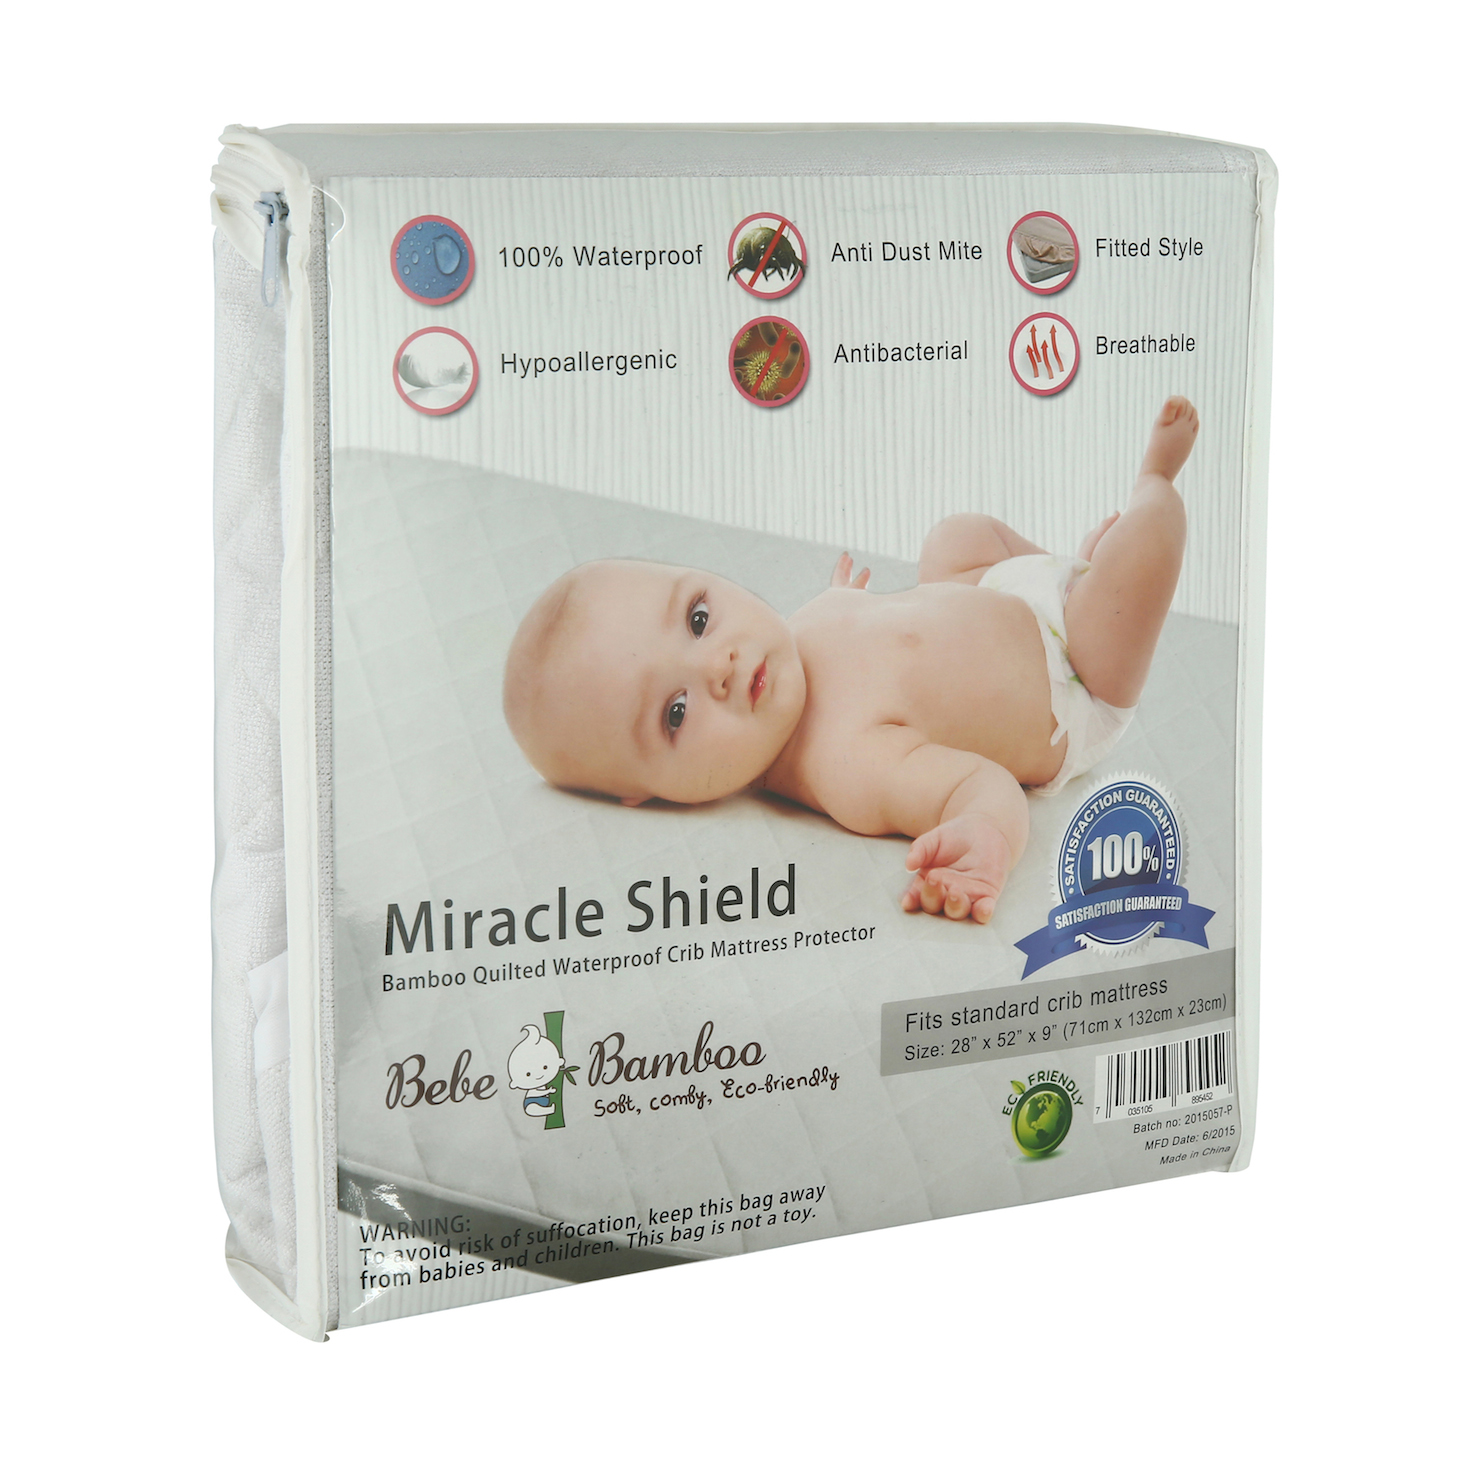 Award Winning Bebe Bamboo™ Miracle Shield Quilted Waterproof Mattress Protector Buy 1 FREE 1!!